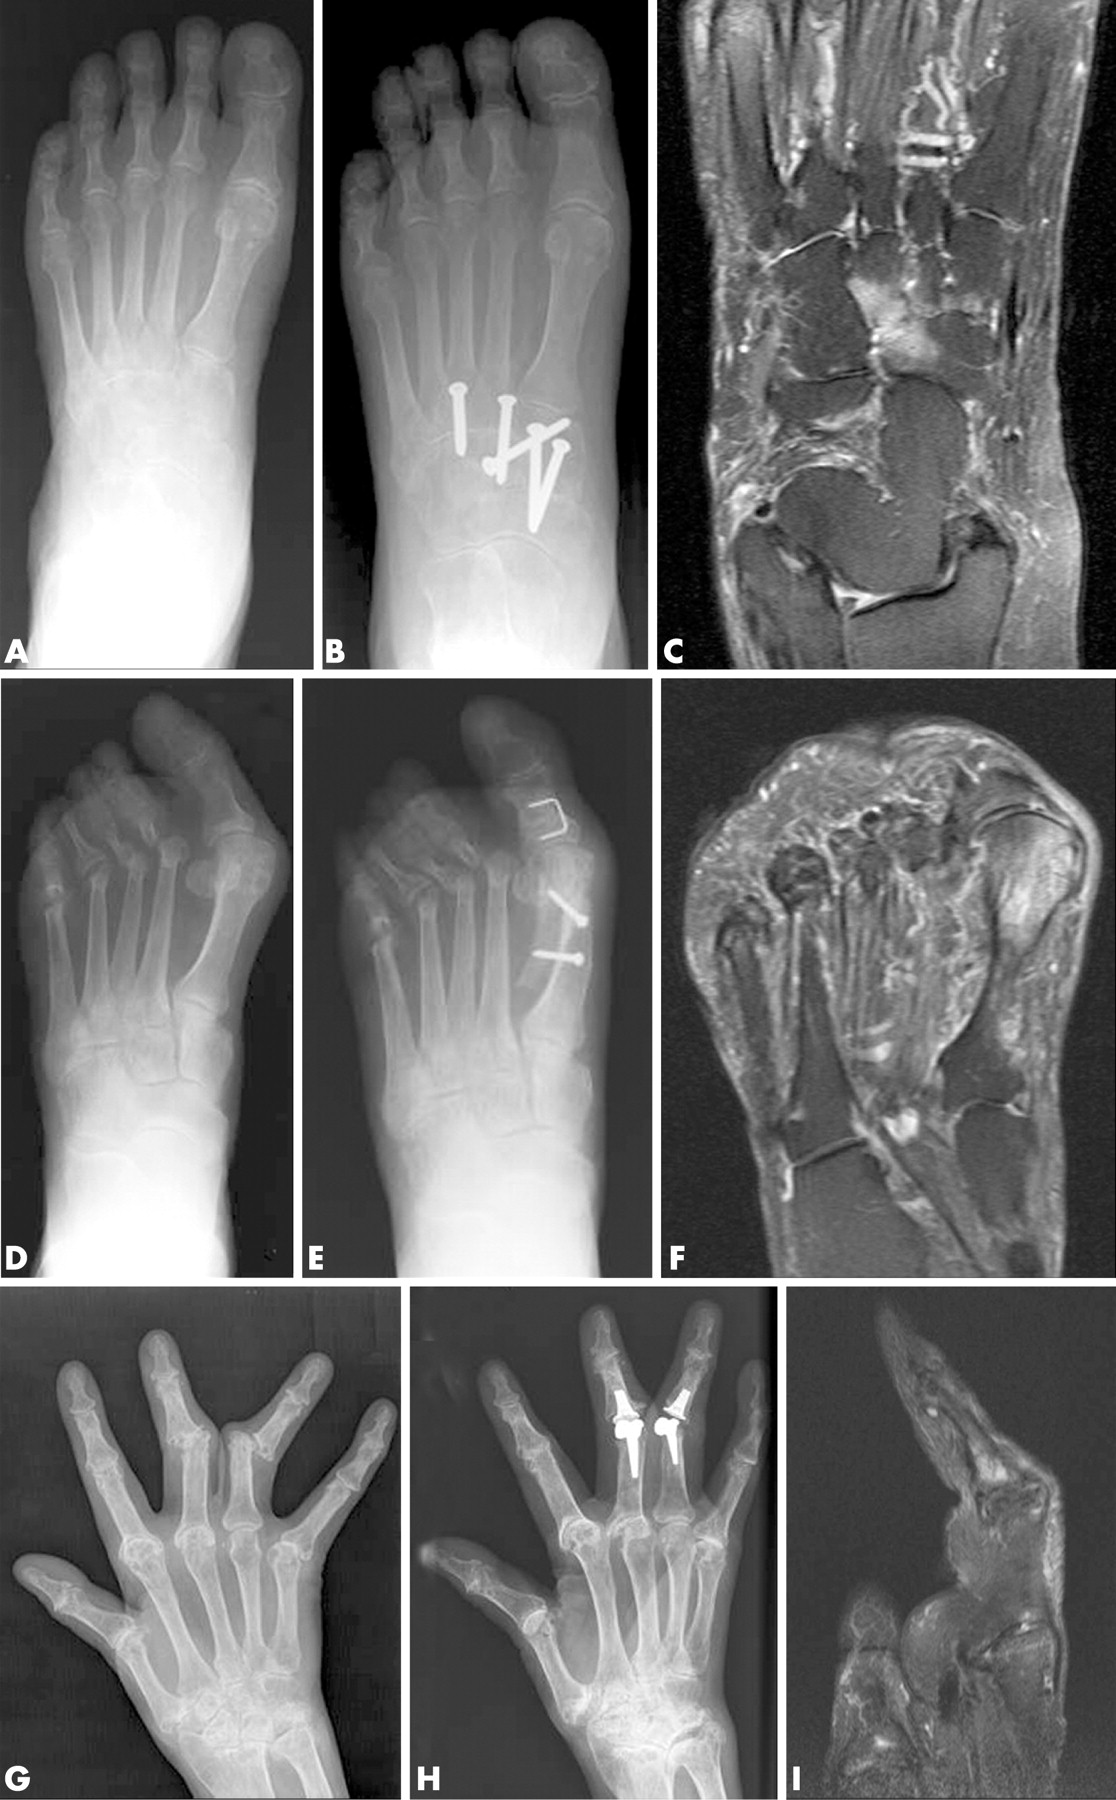 Highgrade MRI bone oedema is common within the surgical